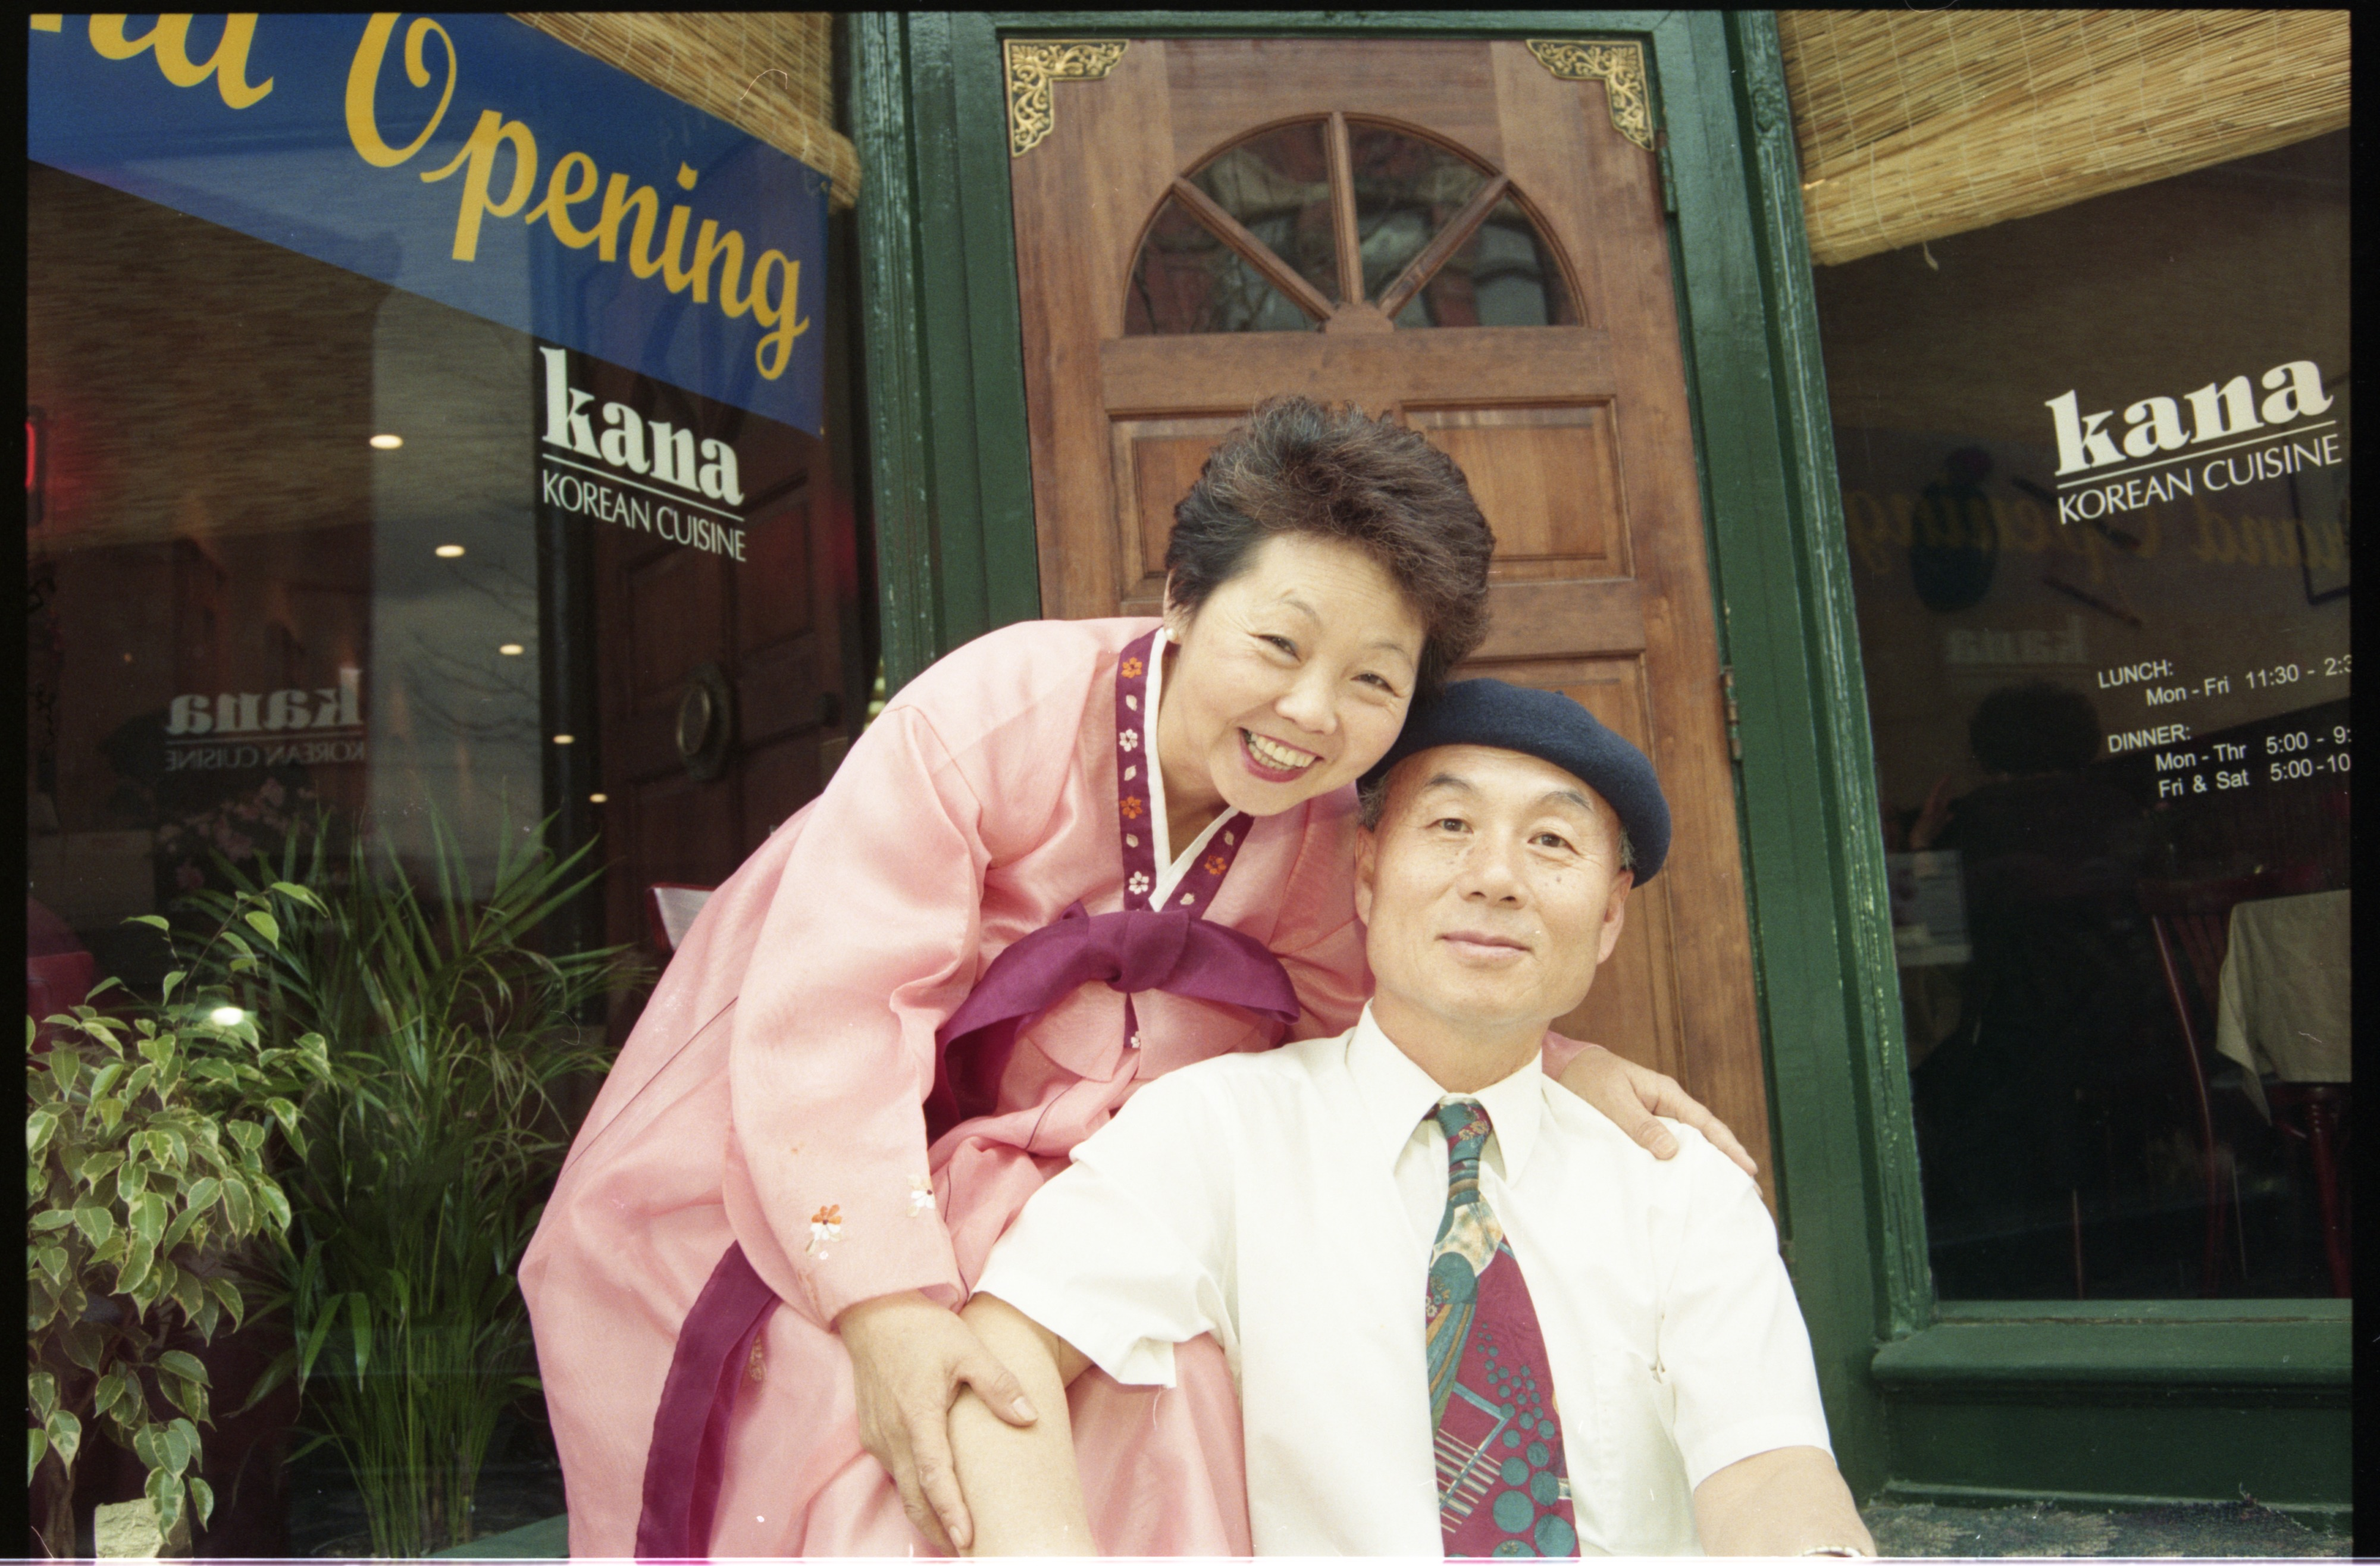 Image from Kun & Byung Ko At Kana's New Location, May 1995